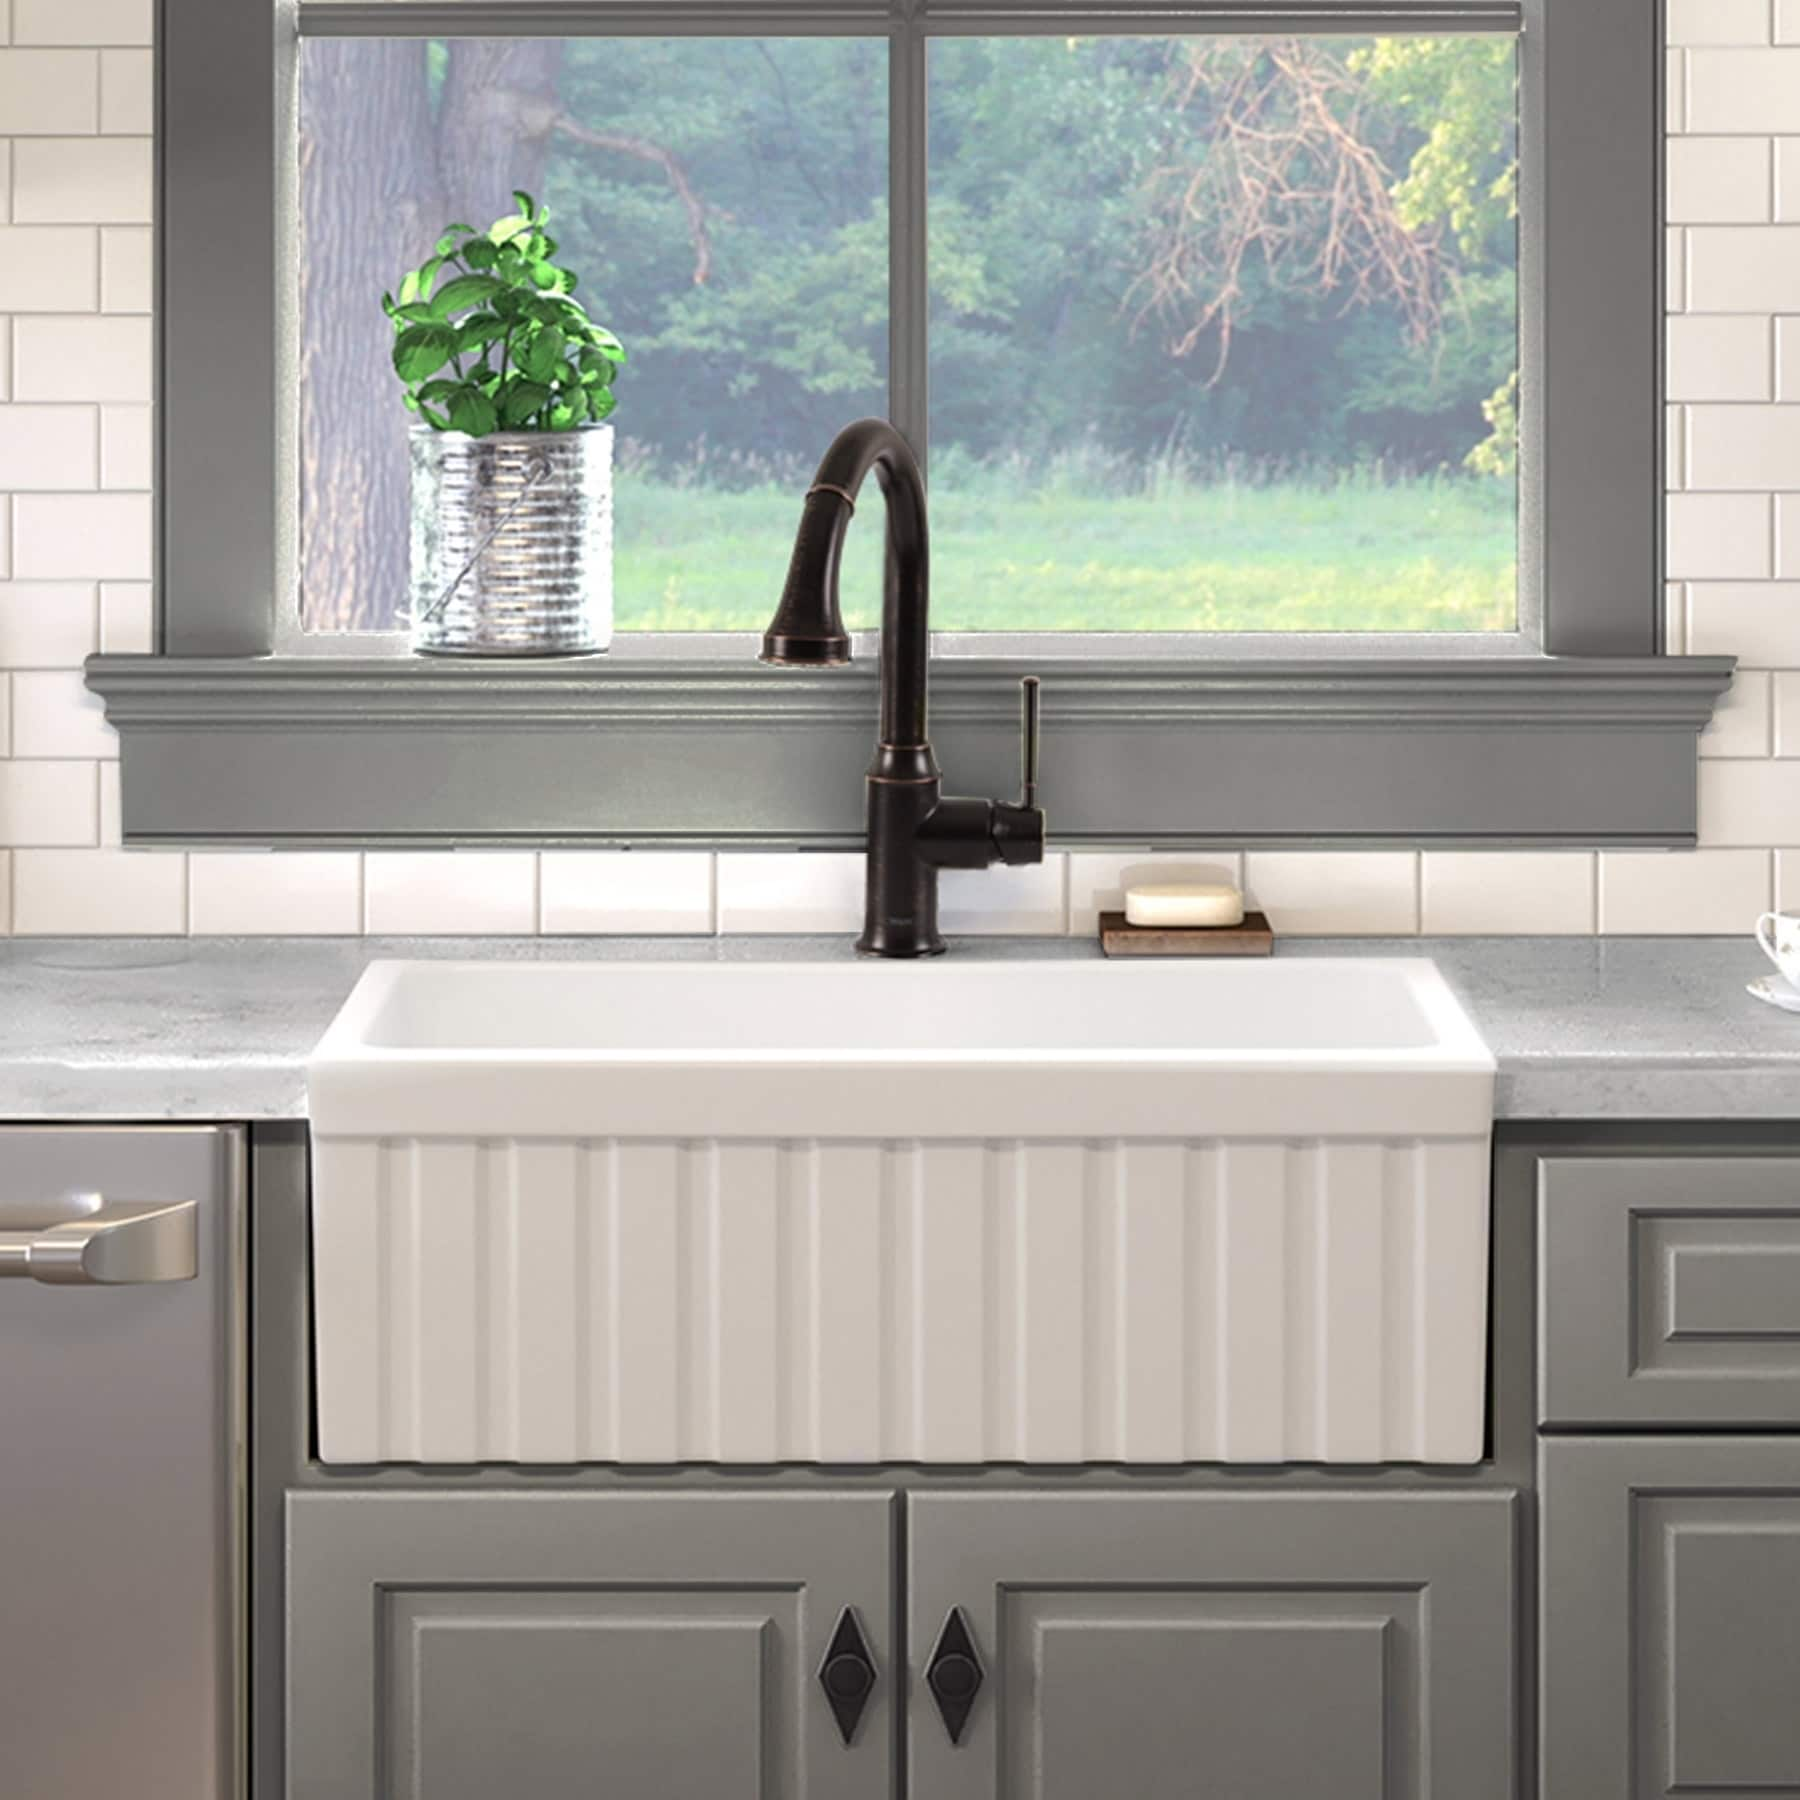 Shop MAYKKE Victoria 30-Inches Fluted Fireclay Farmhouse Kitchen Sink - Free Shipping Today - Overstock - 18003305 & Shop MAYKKE Victoria 30-Inches Fluted Fireclay Farmhouse Kitchen ...